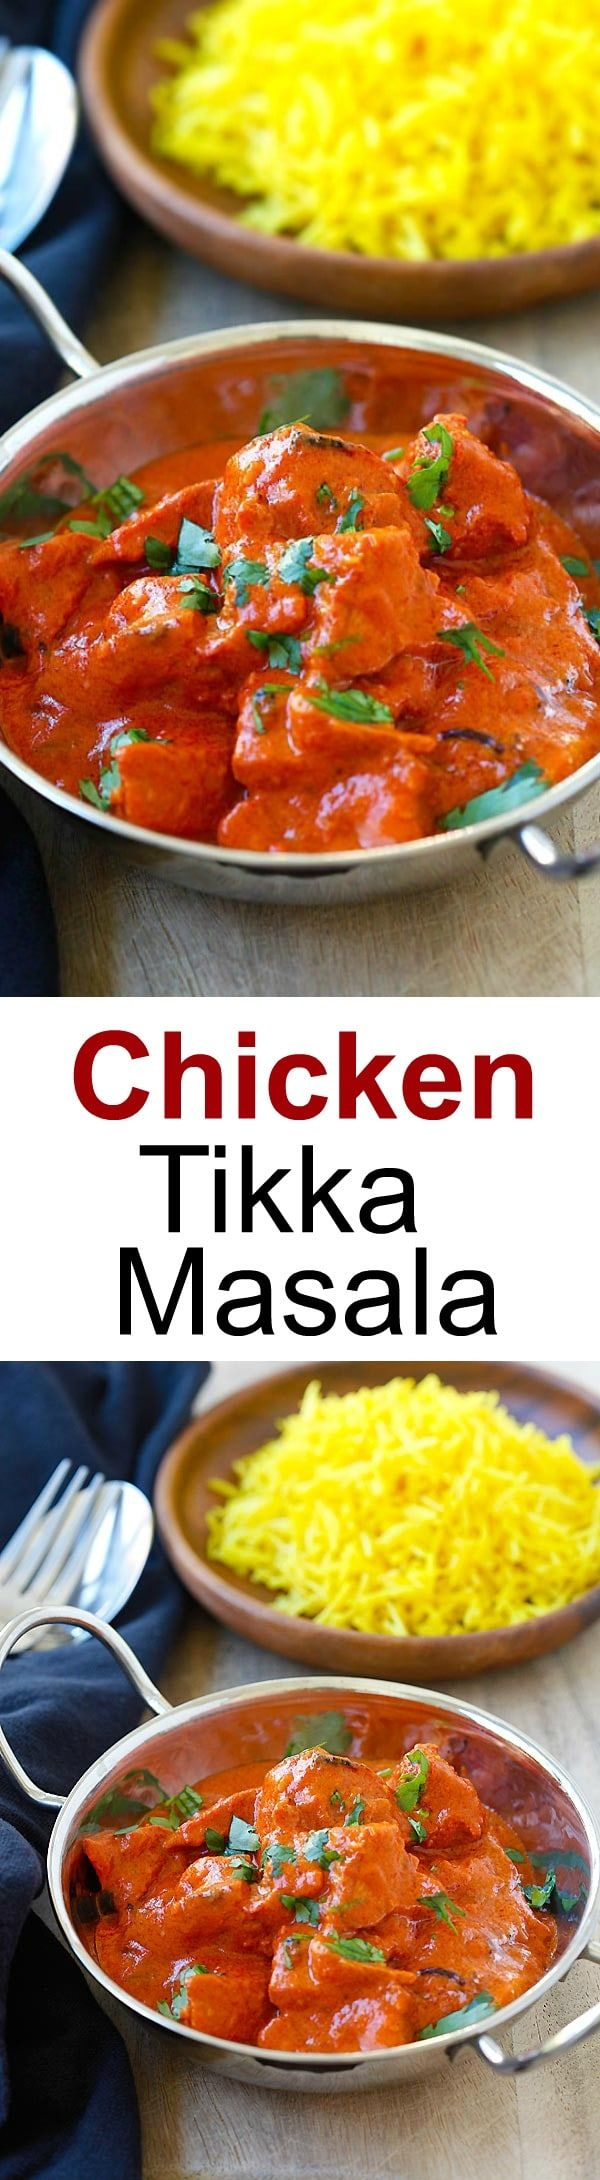 17 Best ideas about Easy Chicken Tikka Masala on Pinterest ...